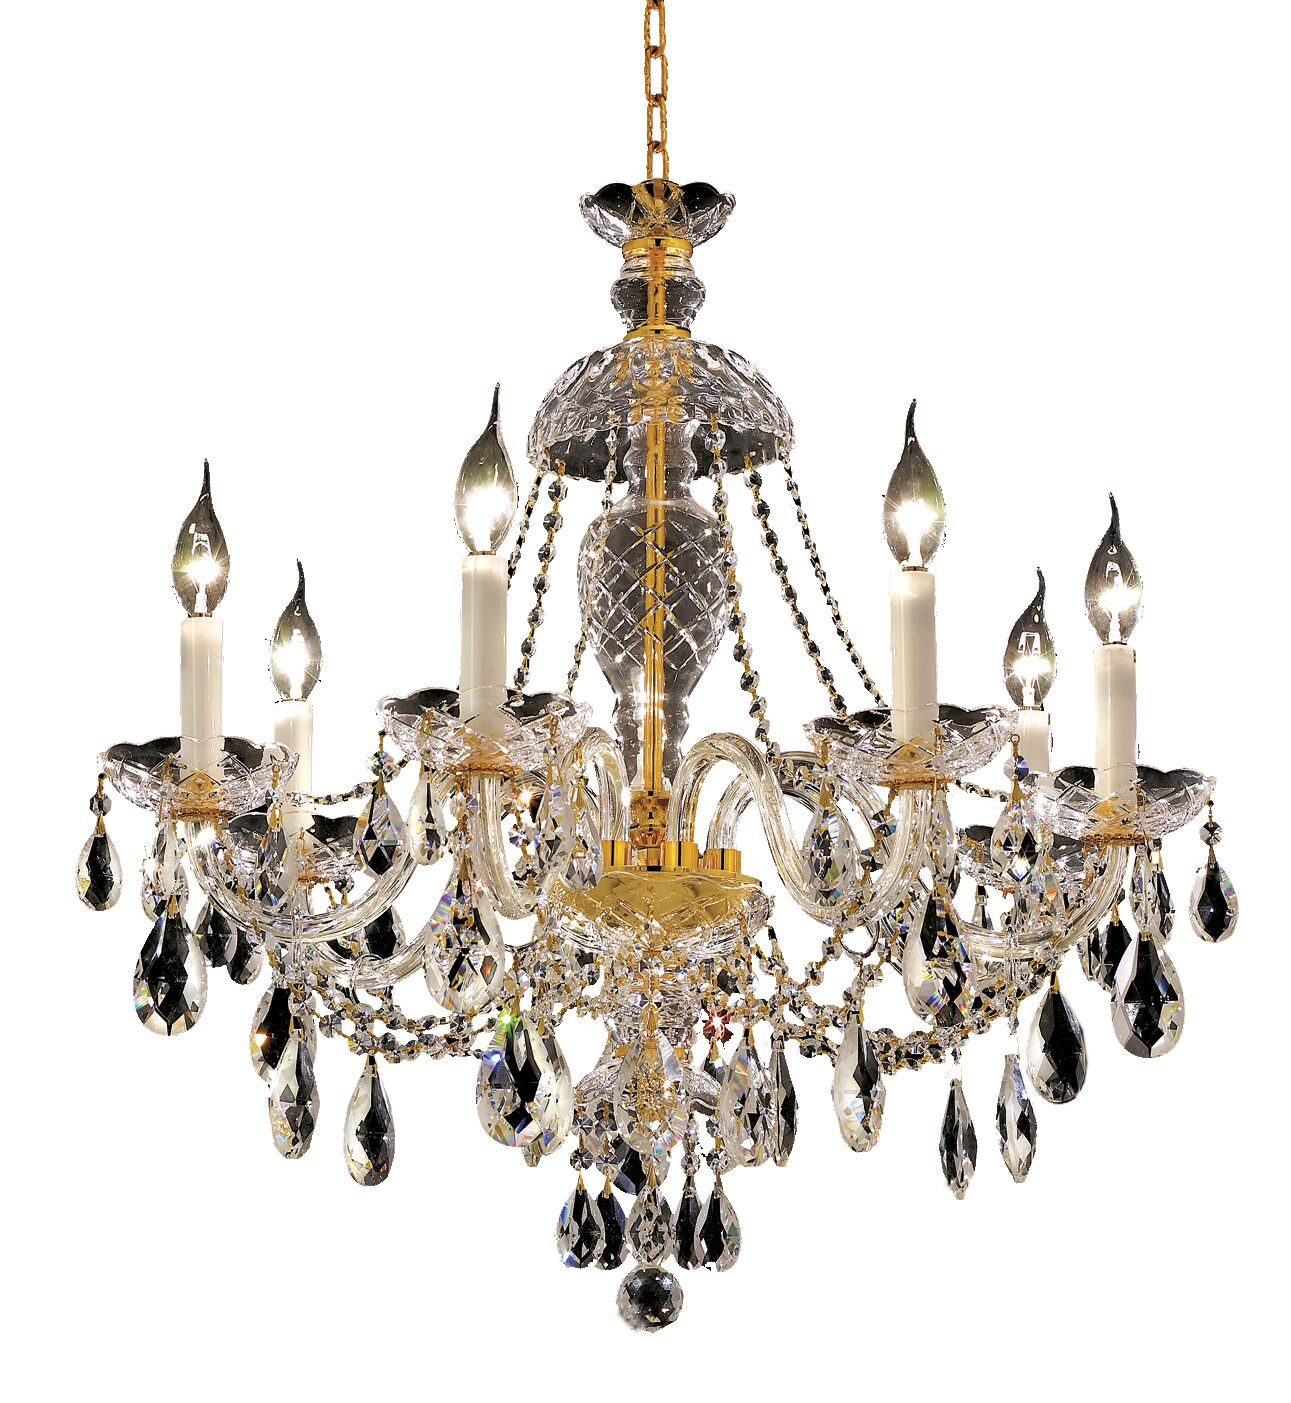 Schroeppel Traditional 7-Light Candle Style Chandelier Color / Crystal Color / Crystal Trim: Gold / Crystal (Clear) / Royal Cut